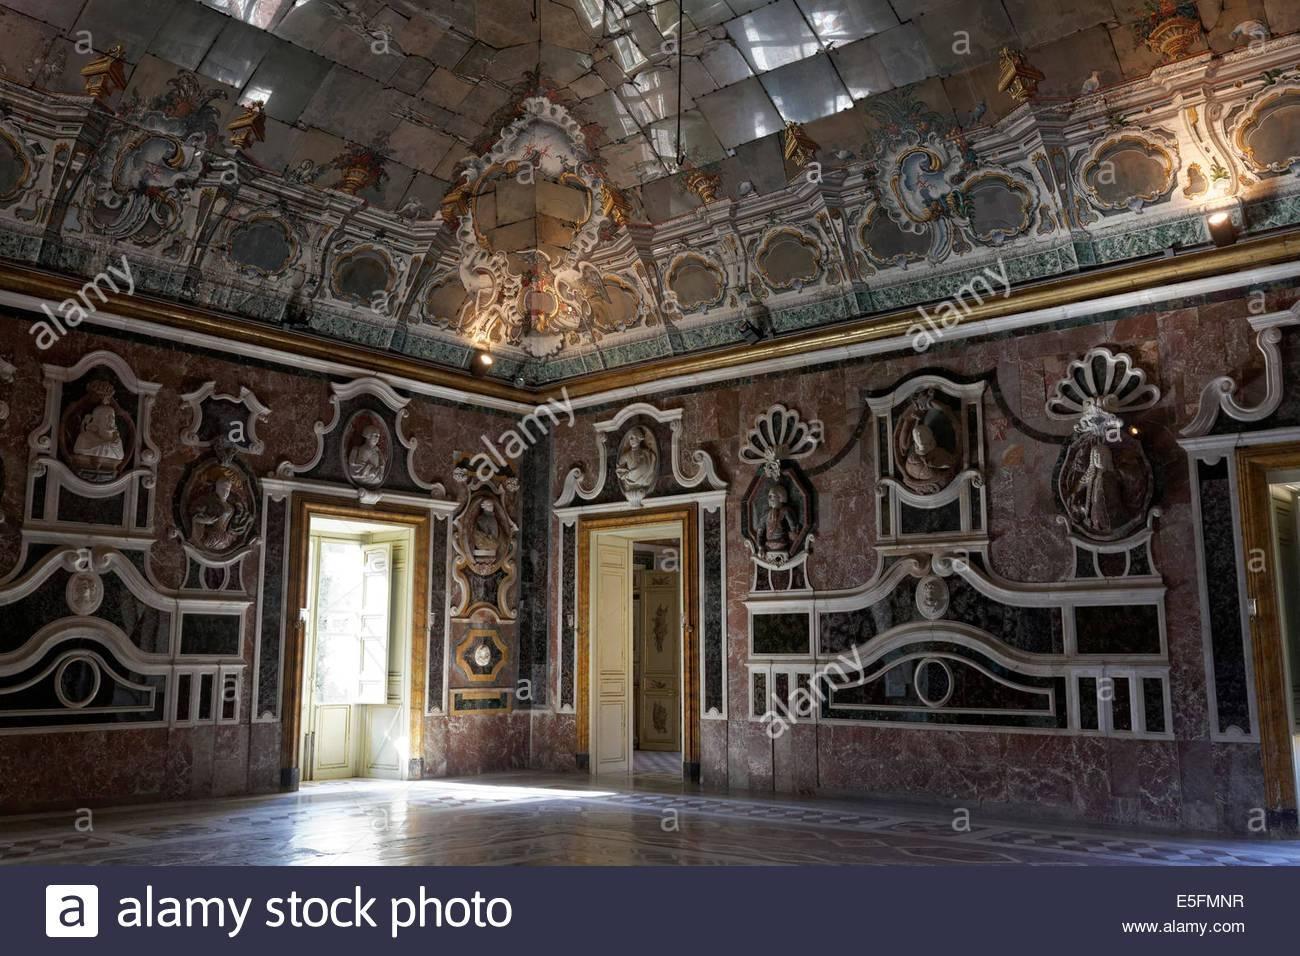 Baroque Ballroom With Ceiling Mirrors, Villa Palagonia, Bagheria with Ceiling Mirrors (Image 3 of 25)